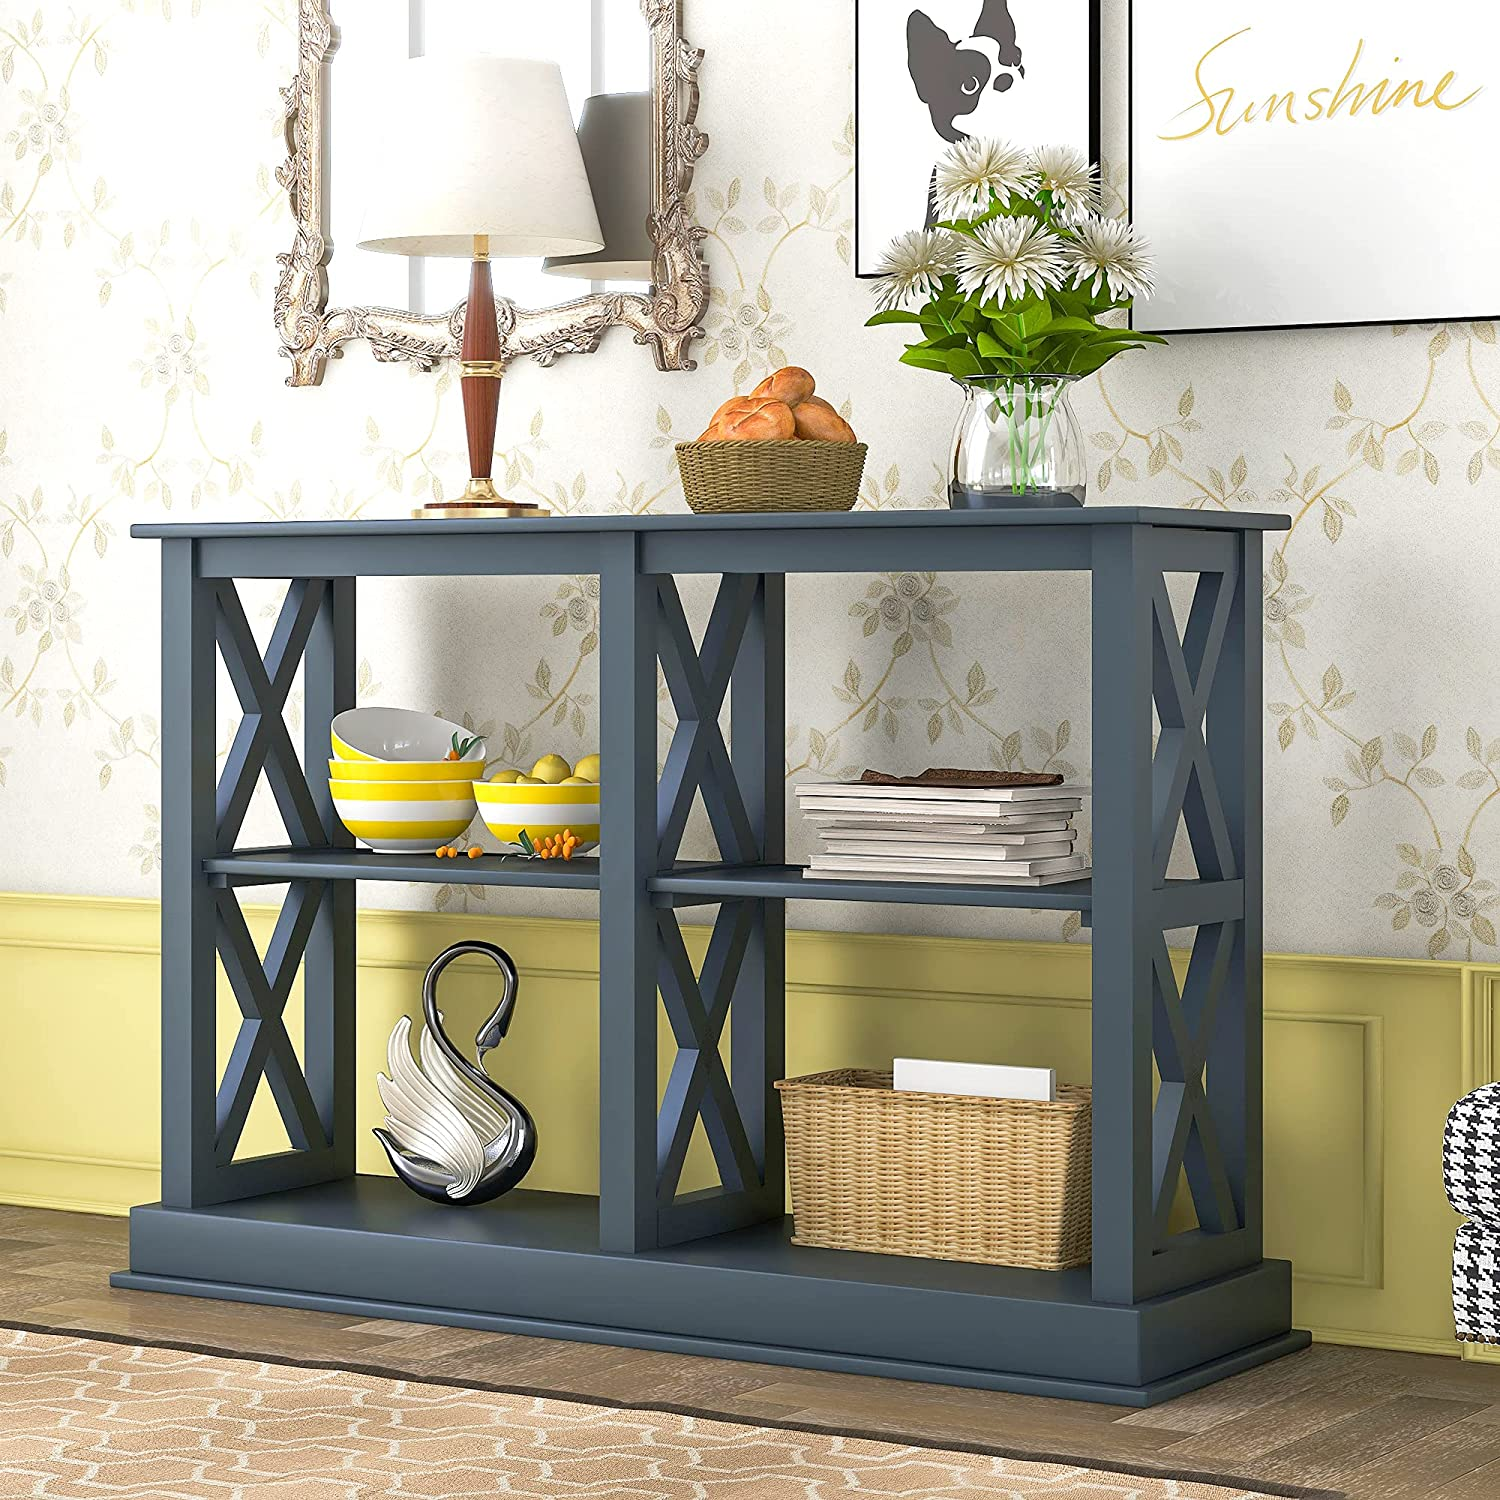 P PURLOVE Choice Console Table Sofa Portland Mall with Open Storage 3-Tier Spac